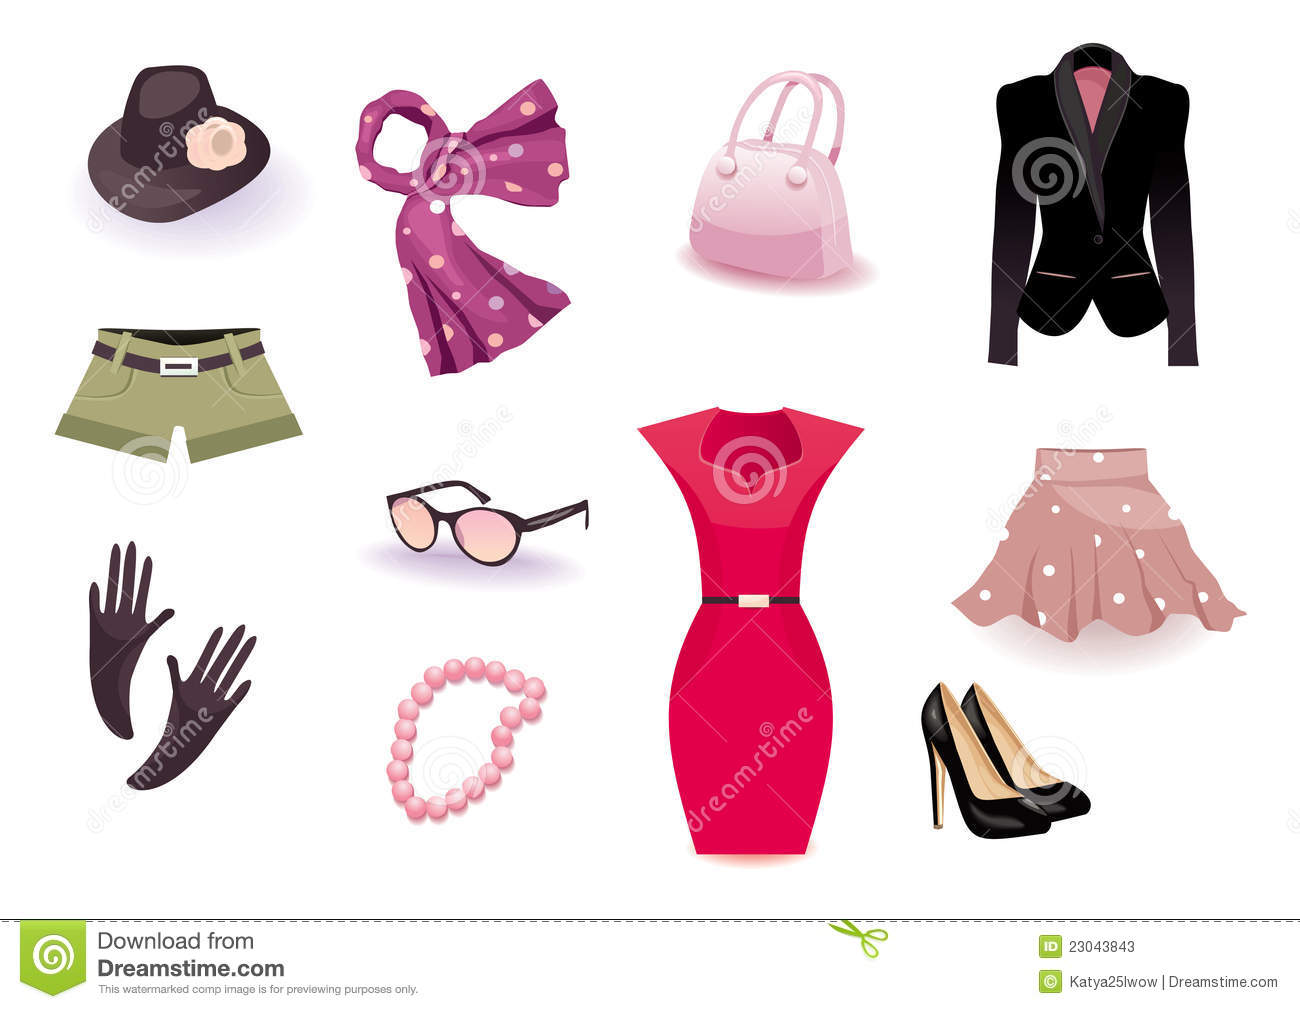 Clothing and Accessories - Safety Guides Back to Safety Education Resources Resellers Guide to Selling Safer Products This guide helps you identify the types of products that are affected and to understand how to comply with the law so that you can keep unsafe products out of .